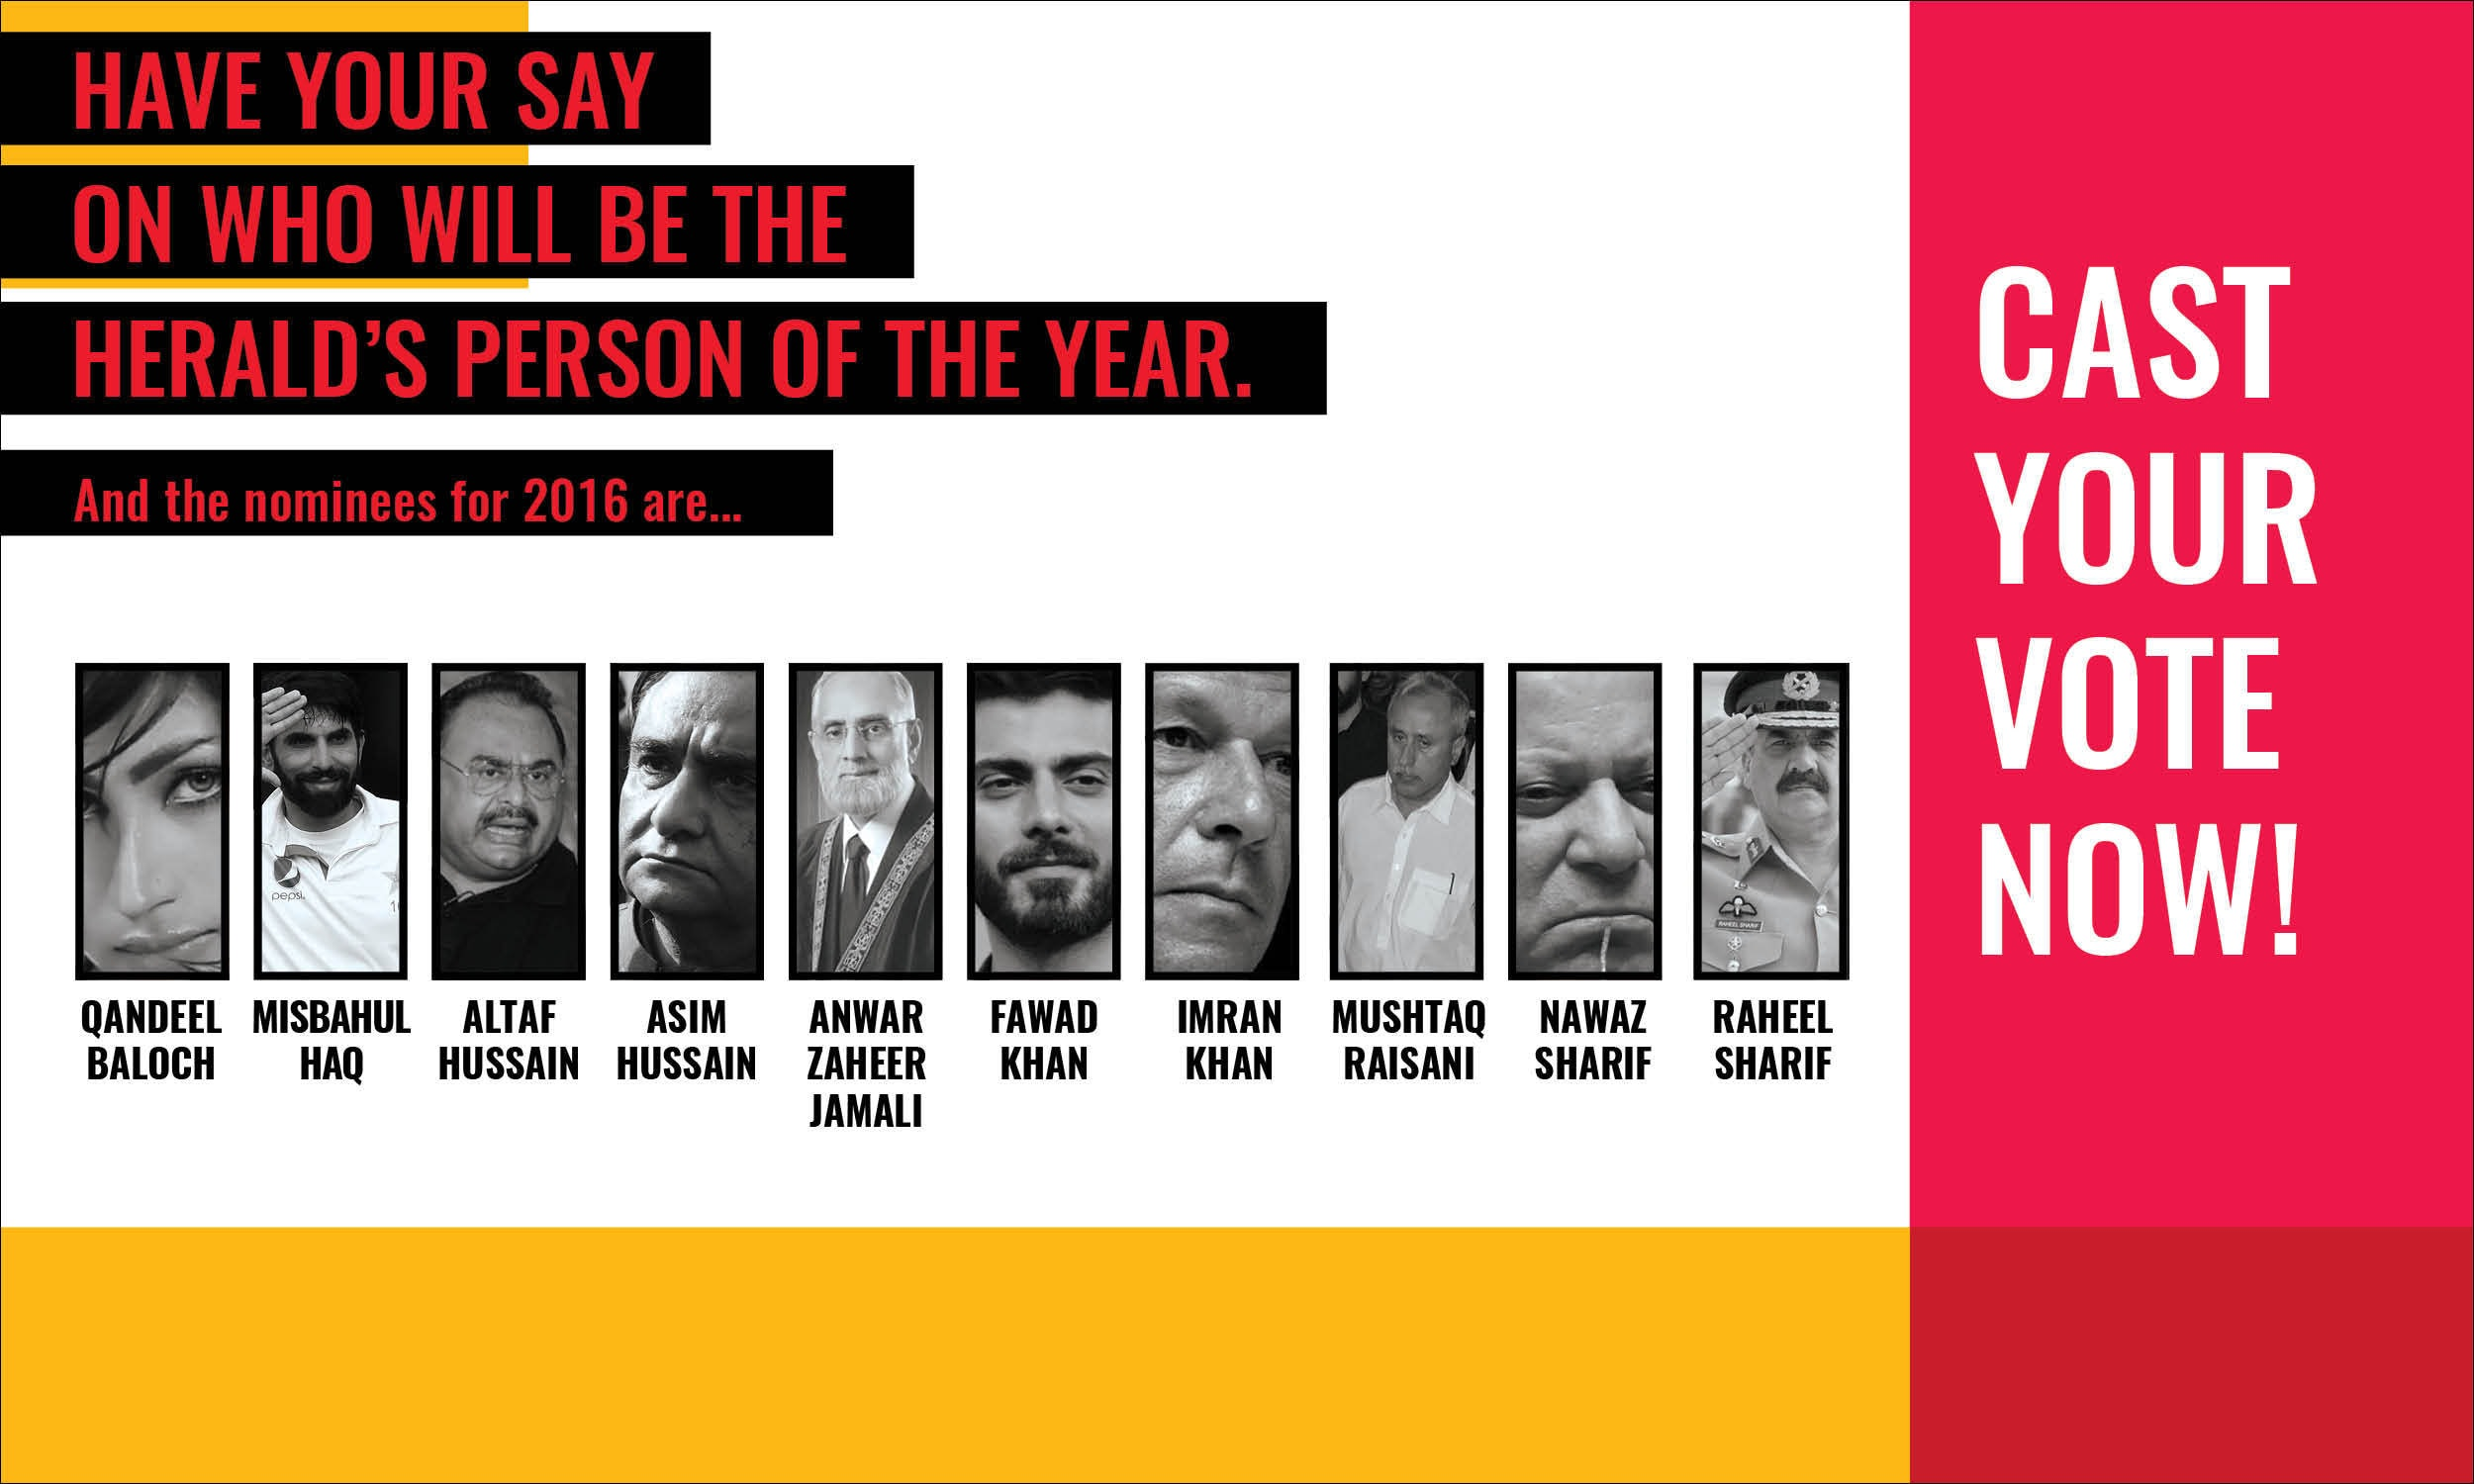 Readers voted for *Herald*'s person of the year through online polling and print ballots